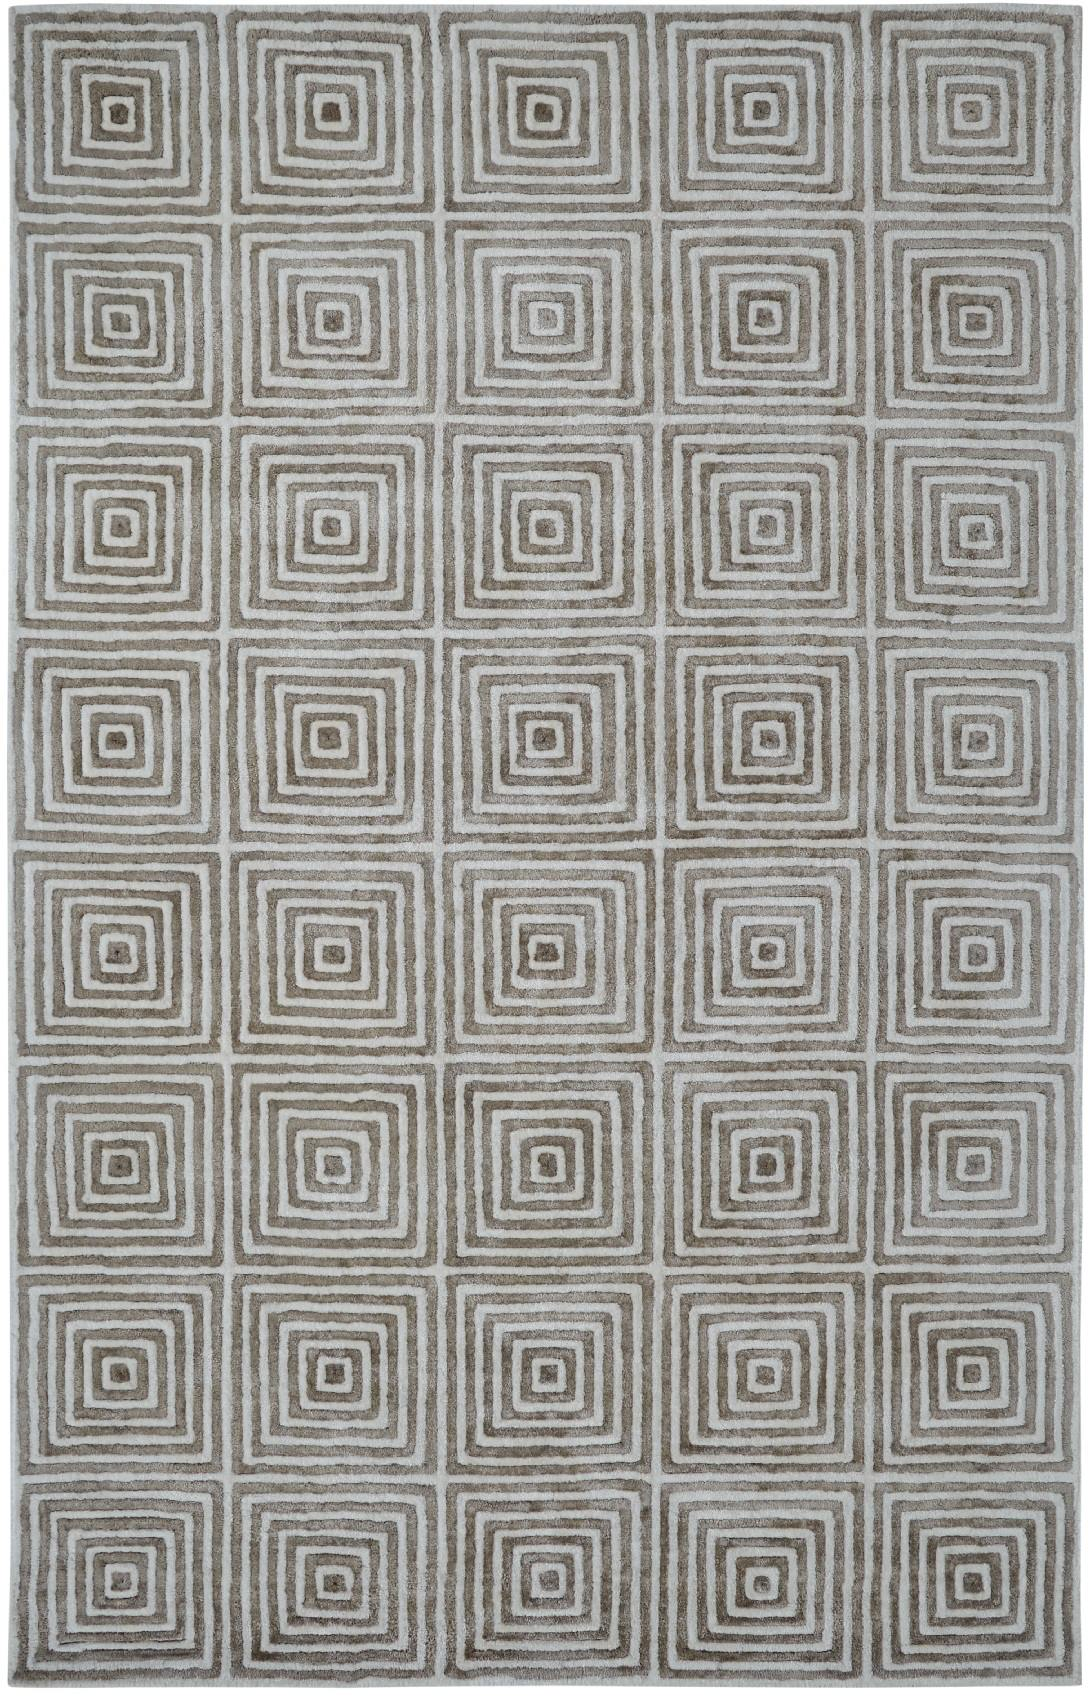 Dynamic Rugs Celeste Geometric Ivory/grey 99226 Area Rug